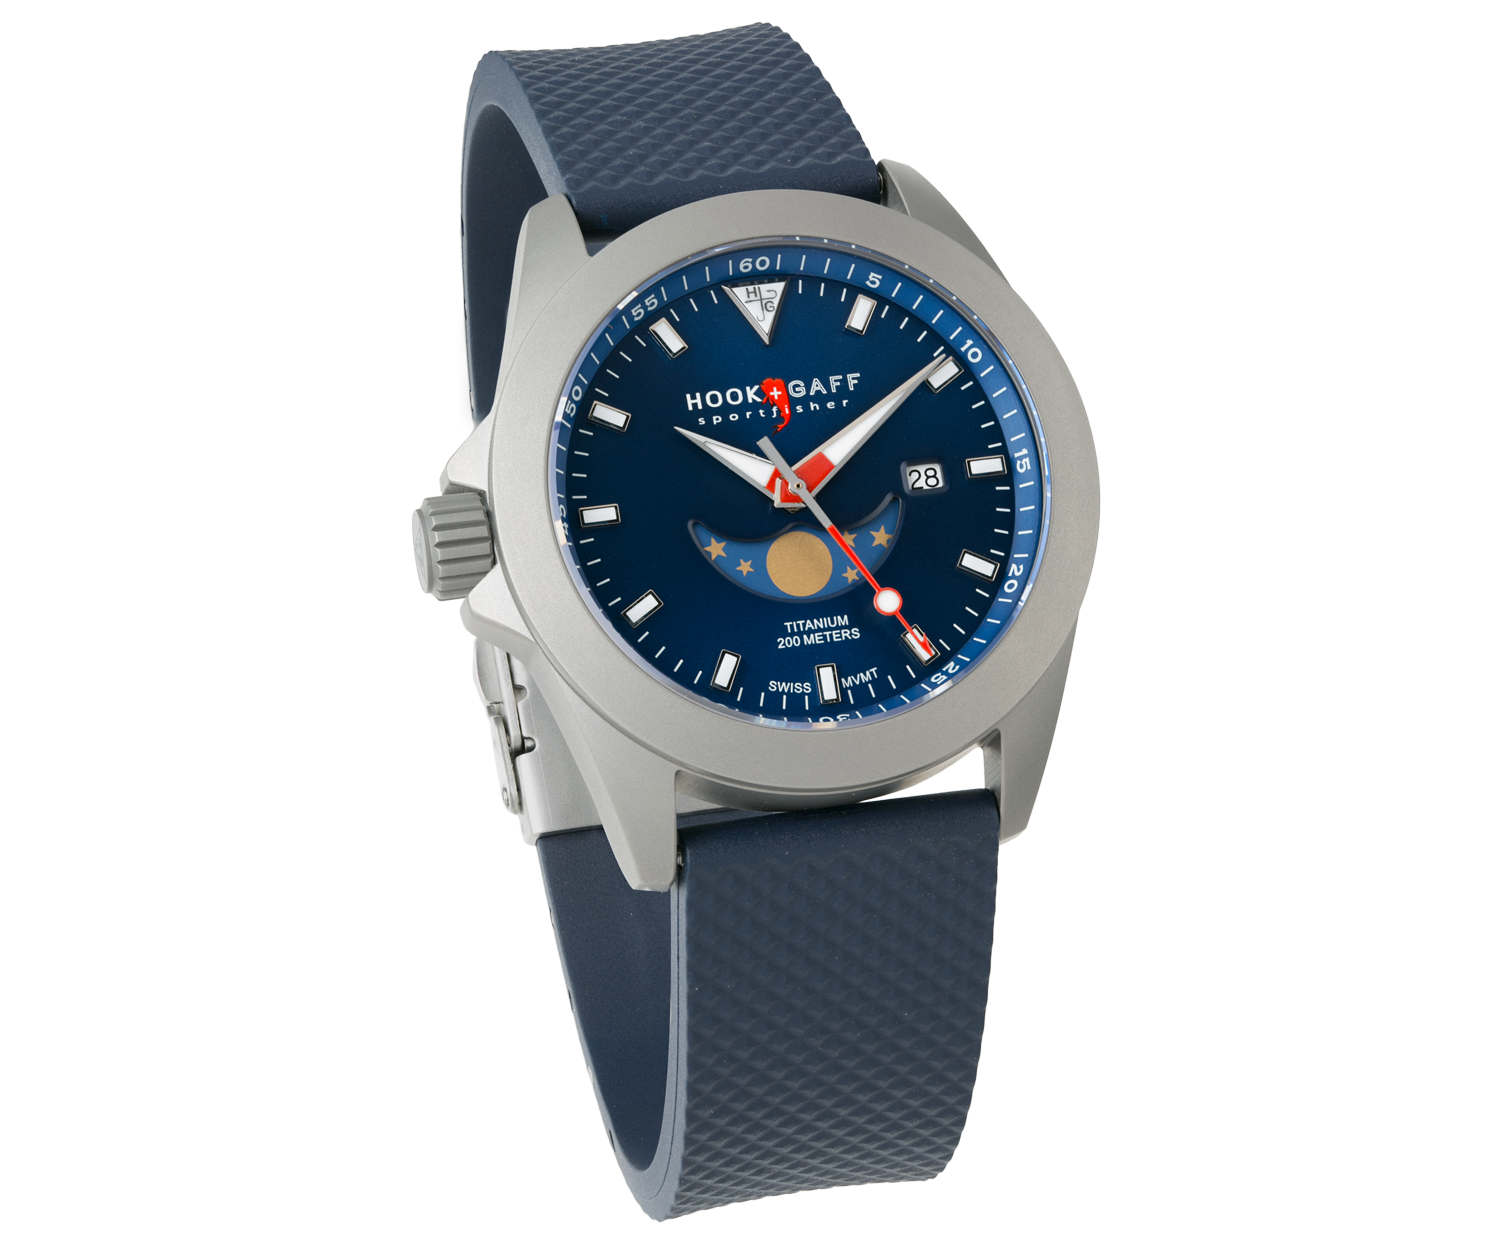 Sportfisher II MP - Blue Moonphase Dial